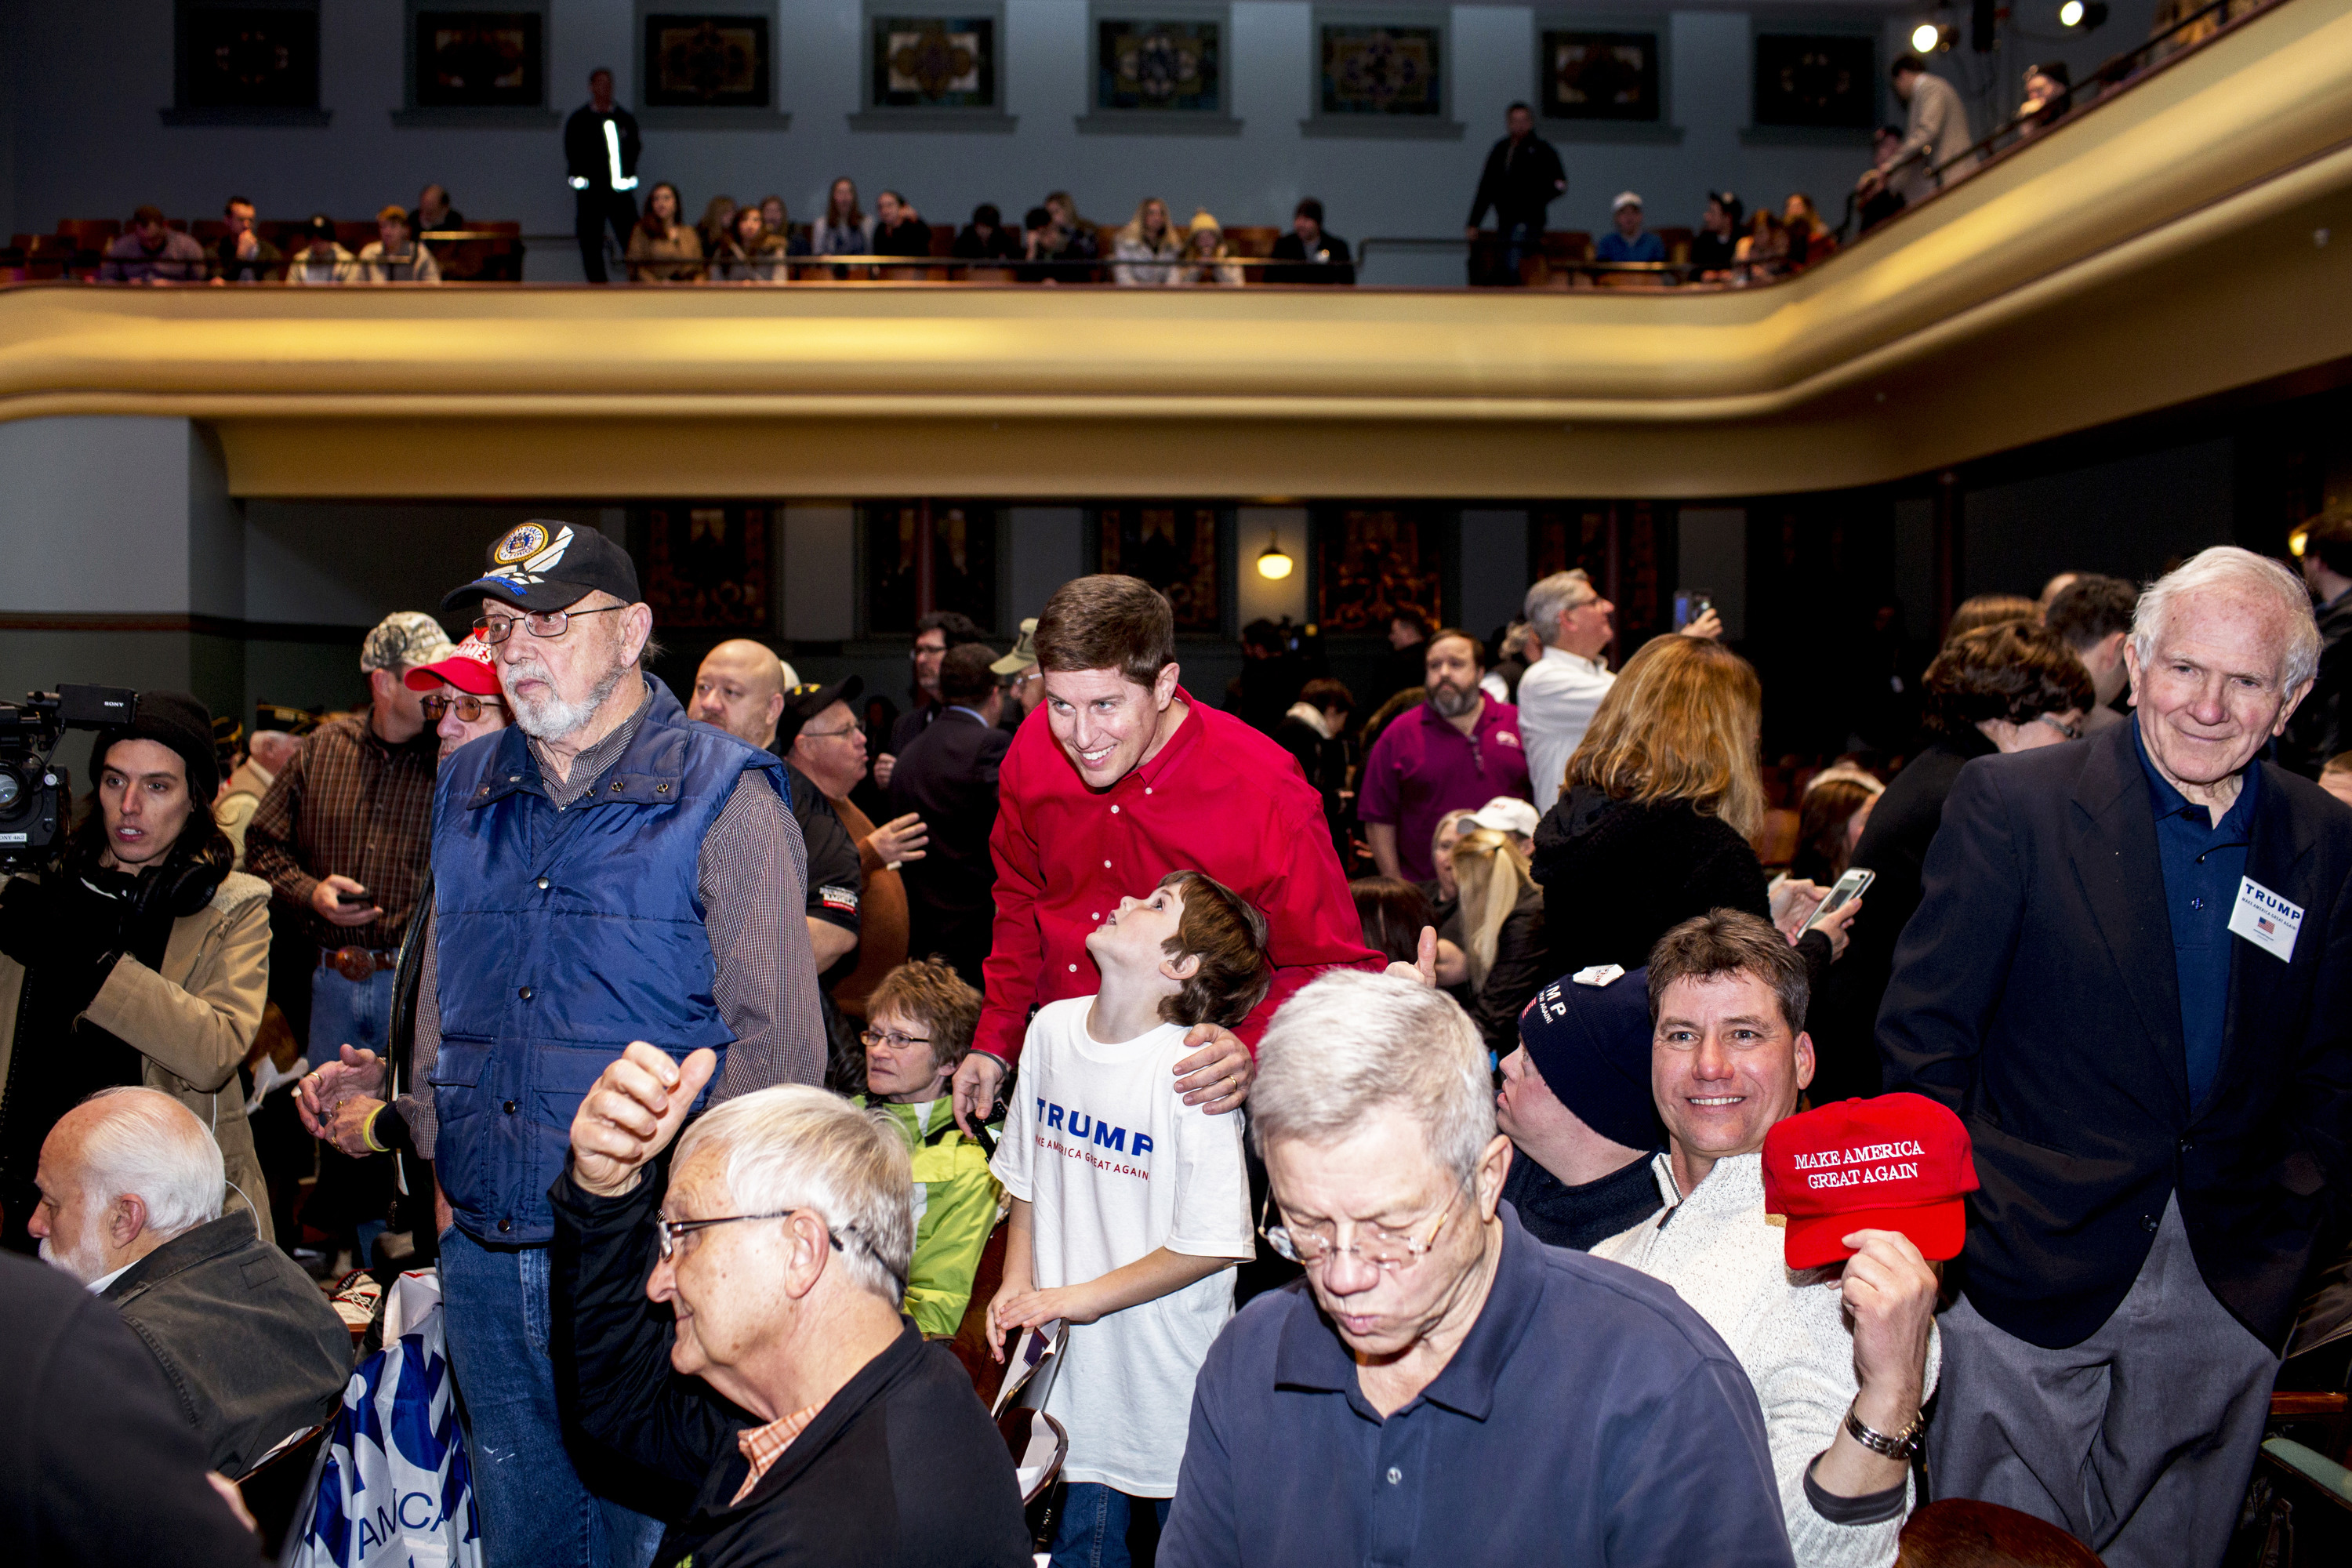 Attendees at a Donald Trump rally in Des Moines, Iowa on Jan. 28, 2016.